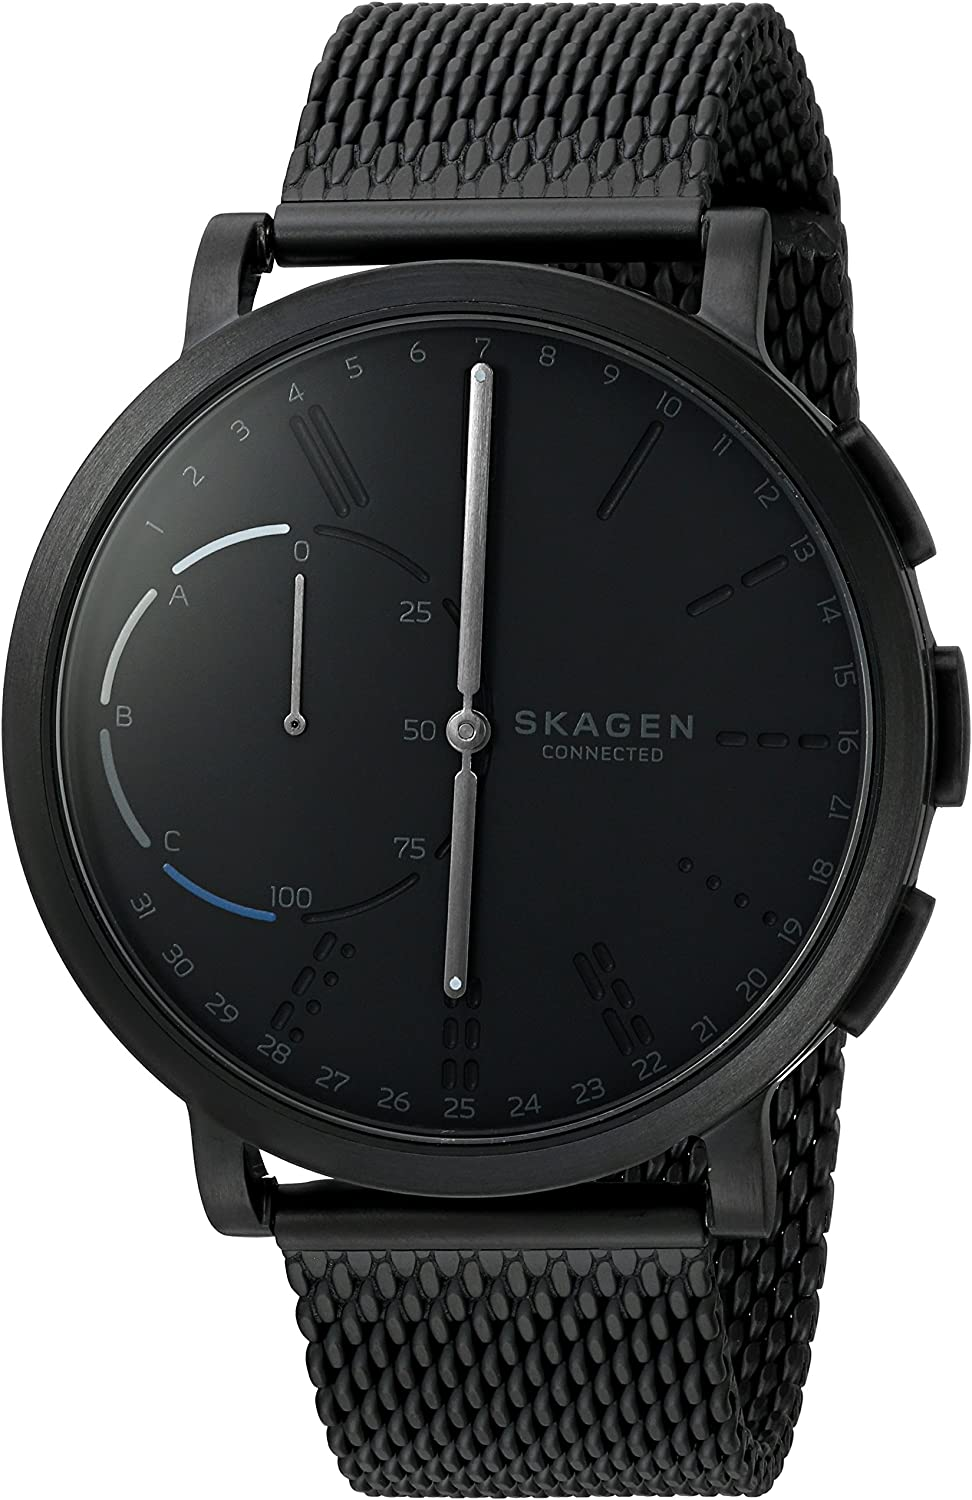 B01MQNNIBE Skagen Connected Men's Hagen Stainless Steel Mesh Hybrid Smartwatch, Color: Black (Model: SKT1109) 813giKjh7nL.UL1500_